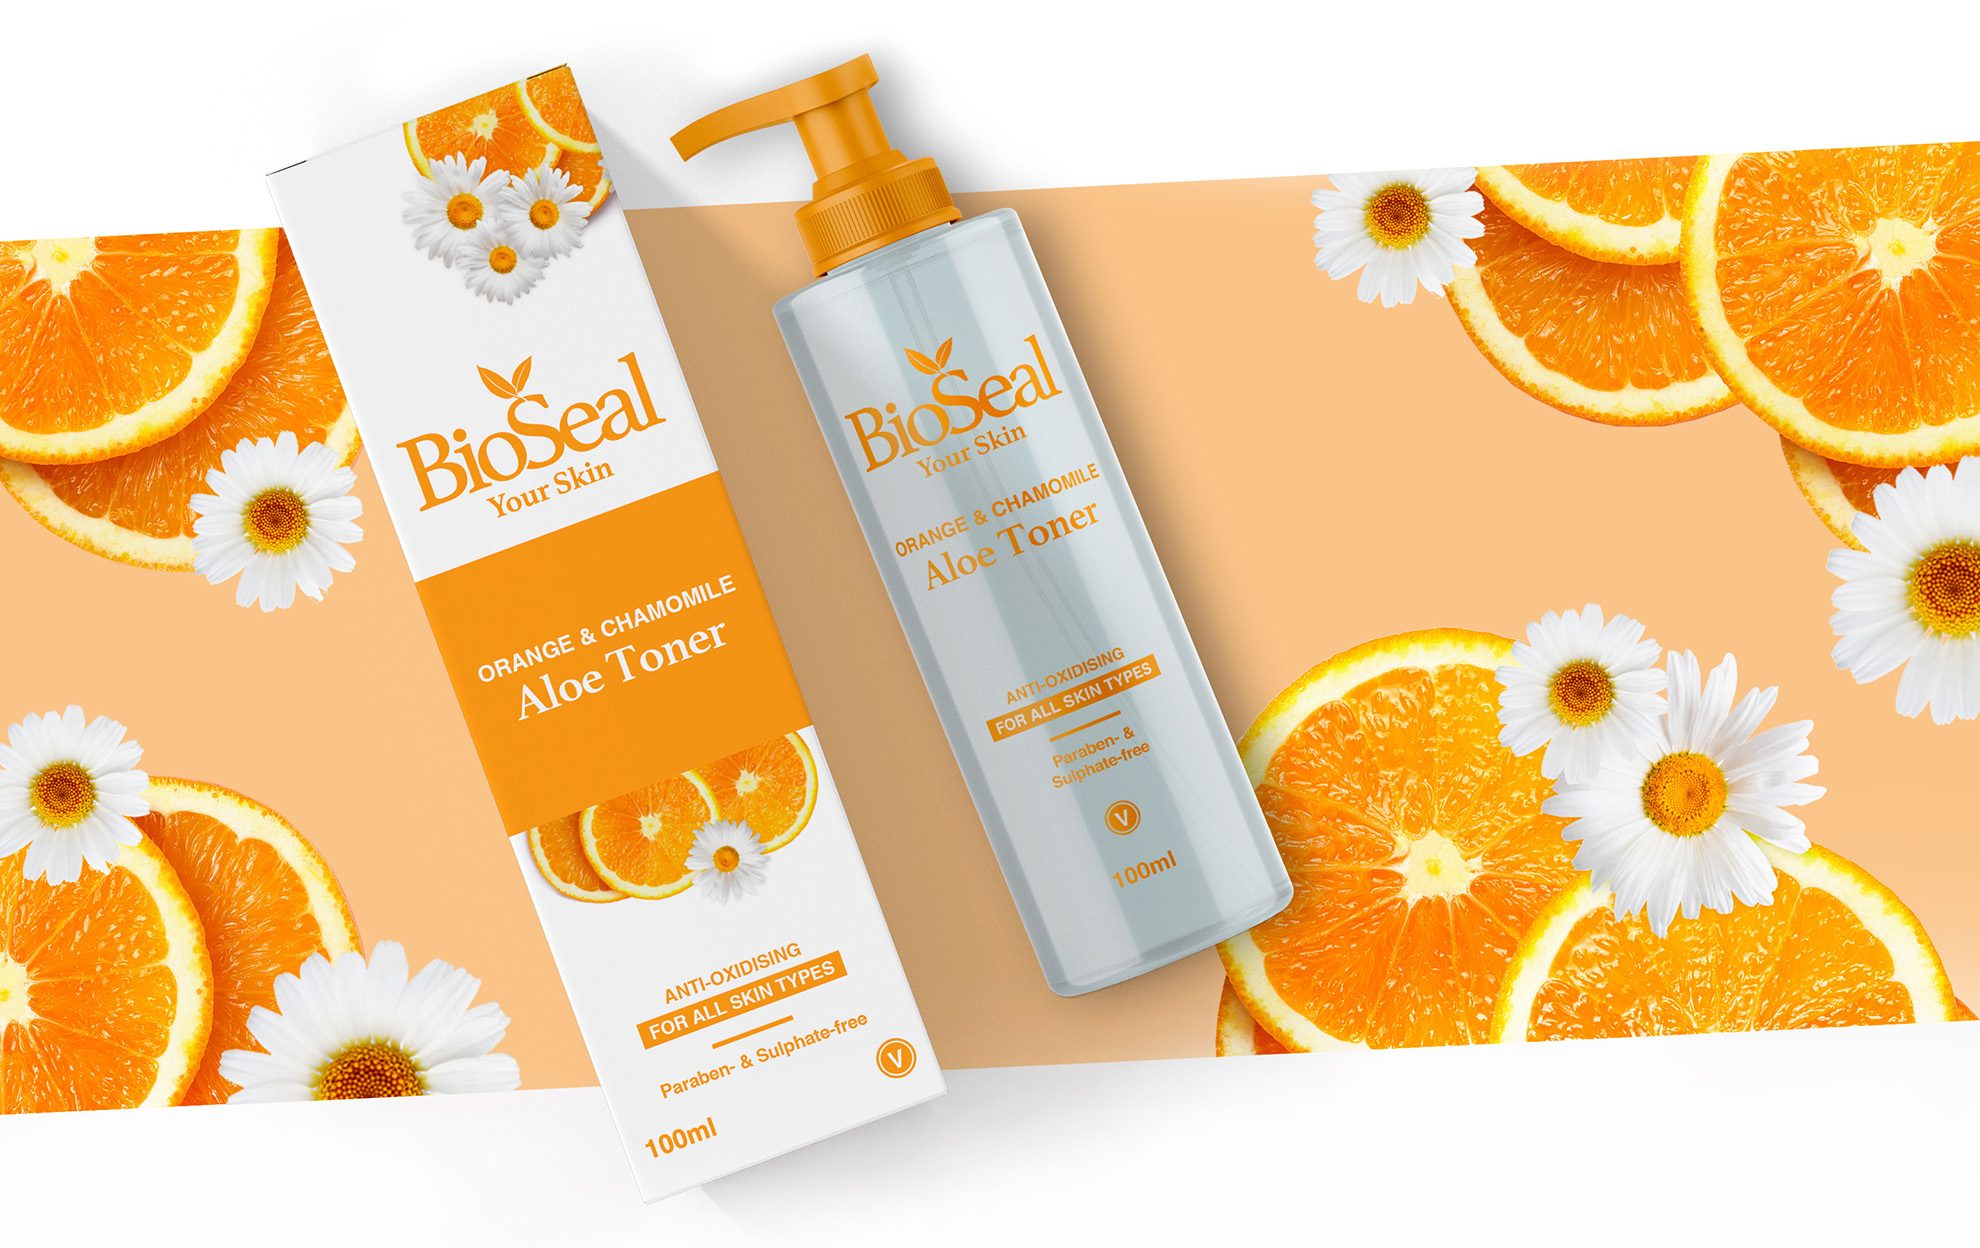 BioSeal Toner - Agent Orange Design Packaging Design Company in Johannesburg South Africa